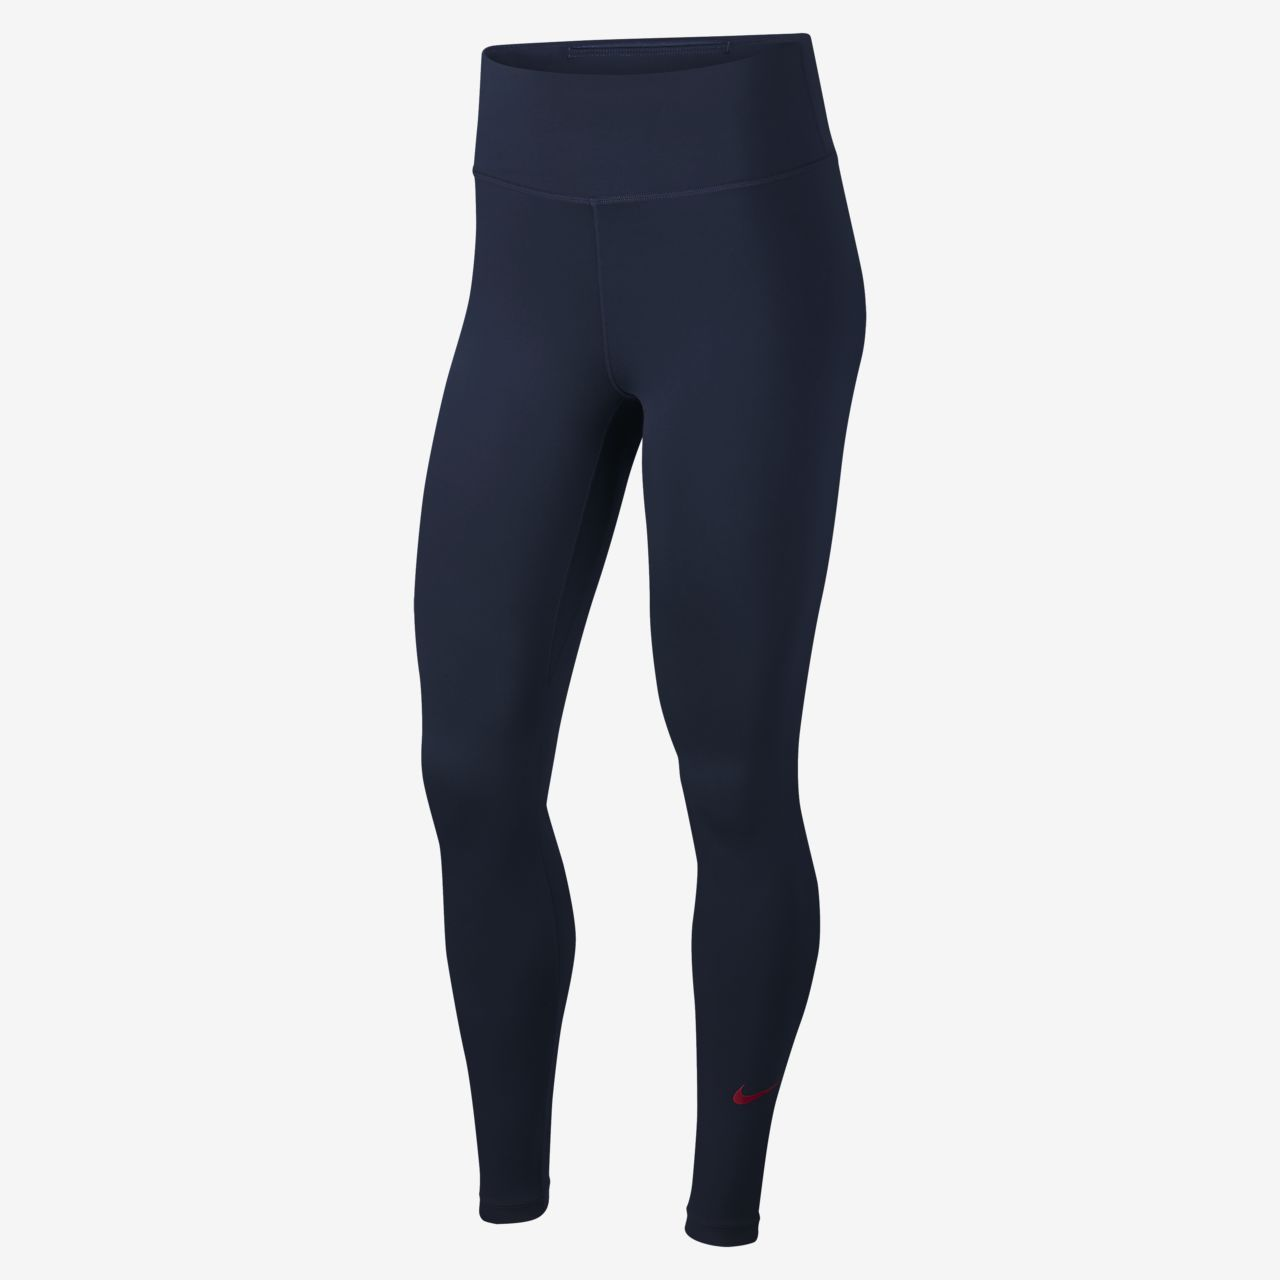 FC Barcelona One Women's Football Tights